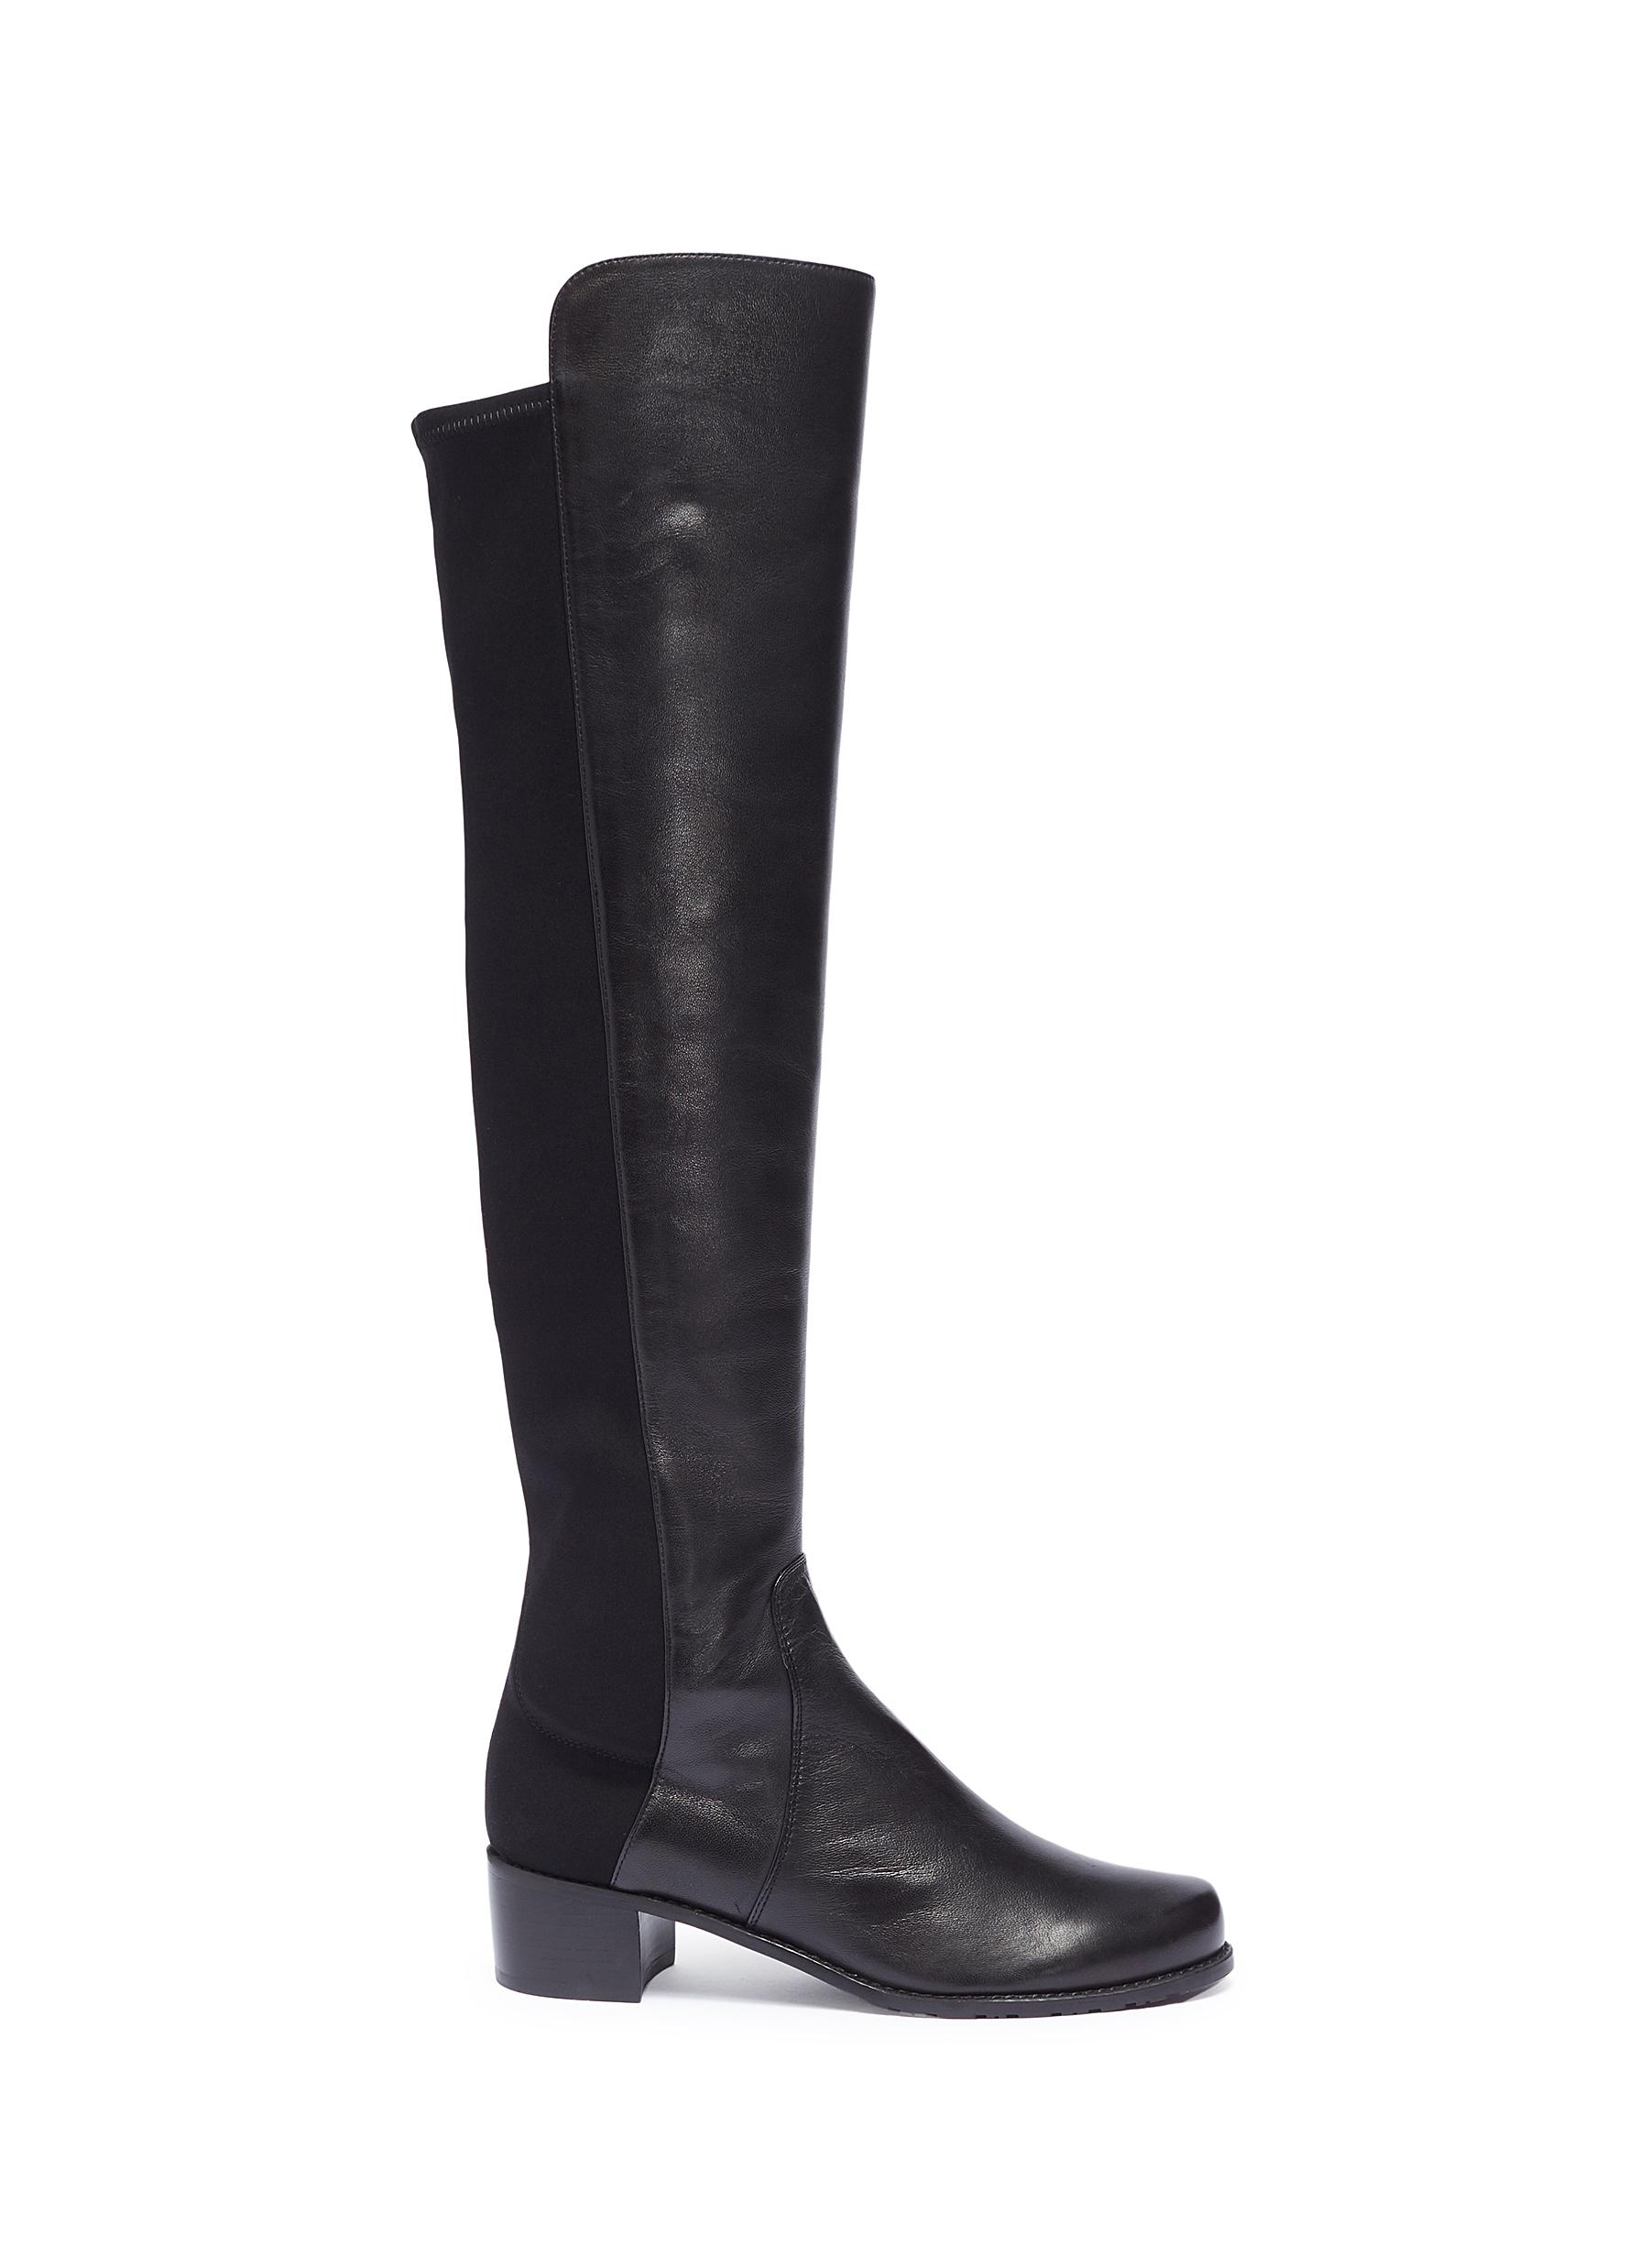 Reserve stretch leather knee high boots by Stuart Weitzman